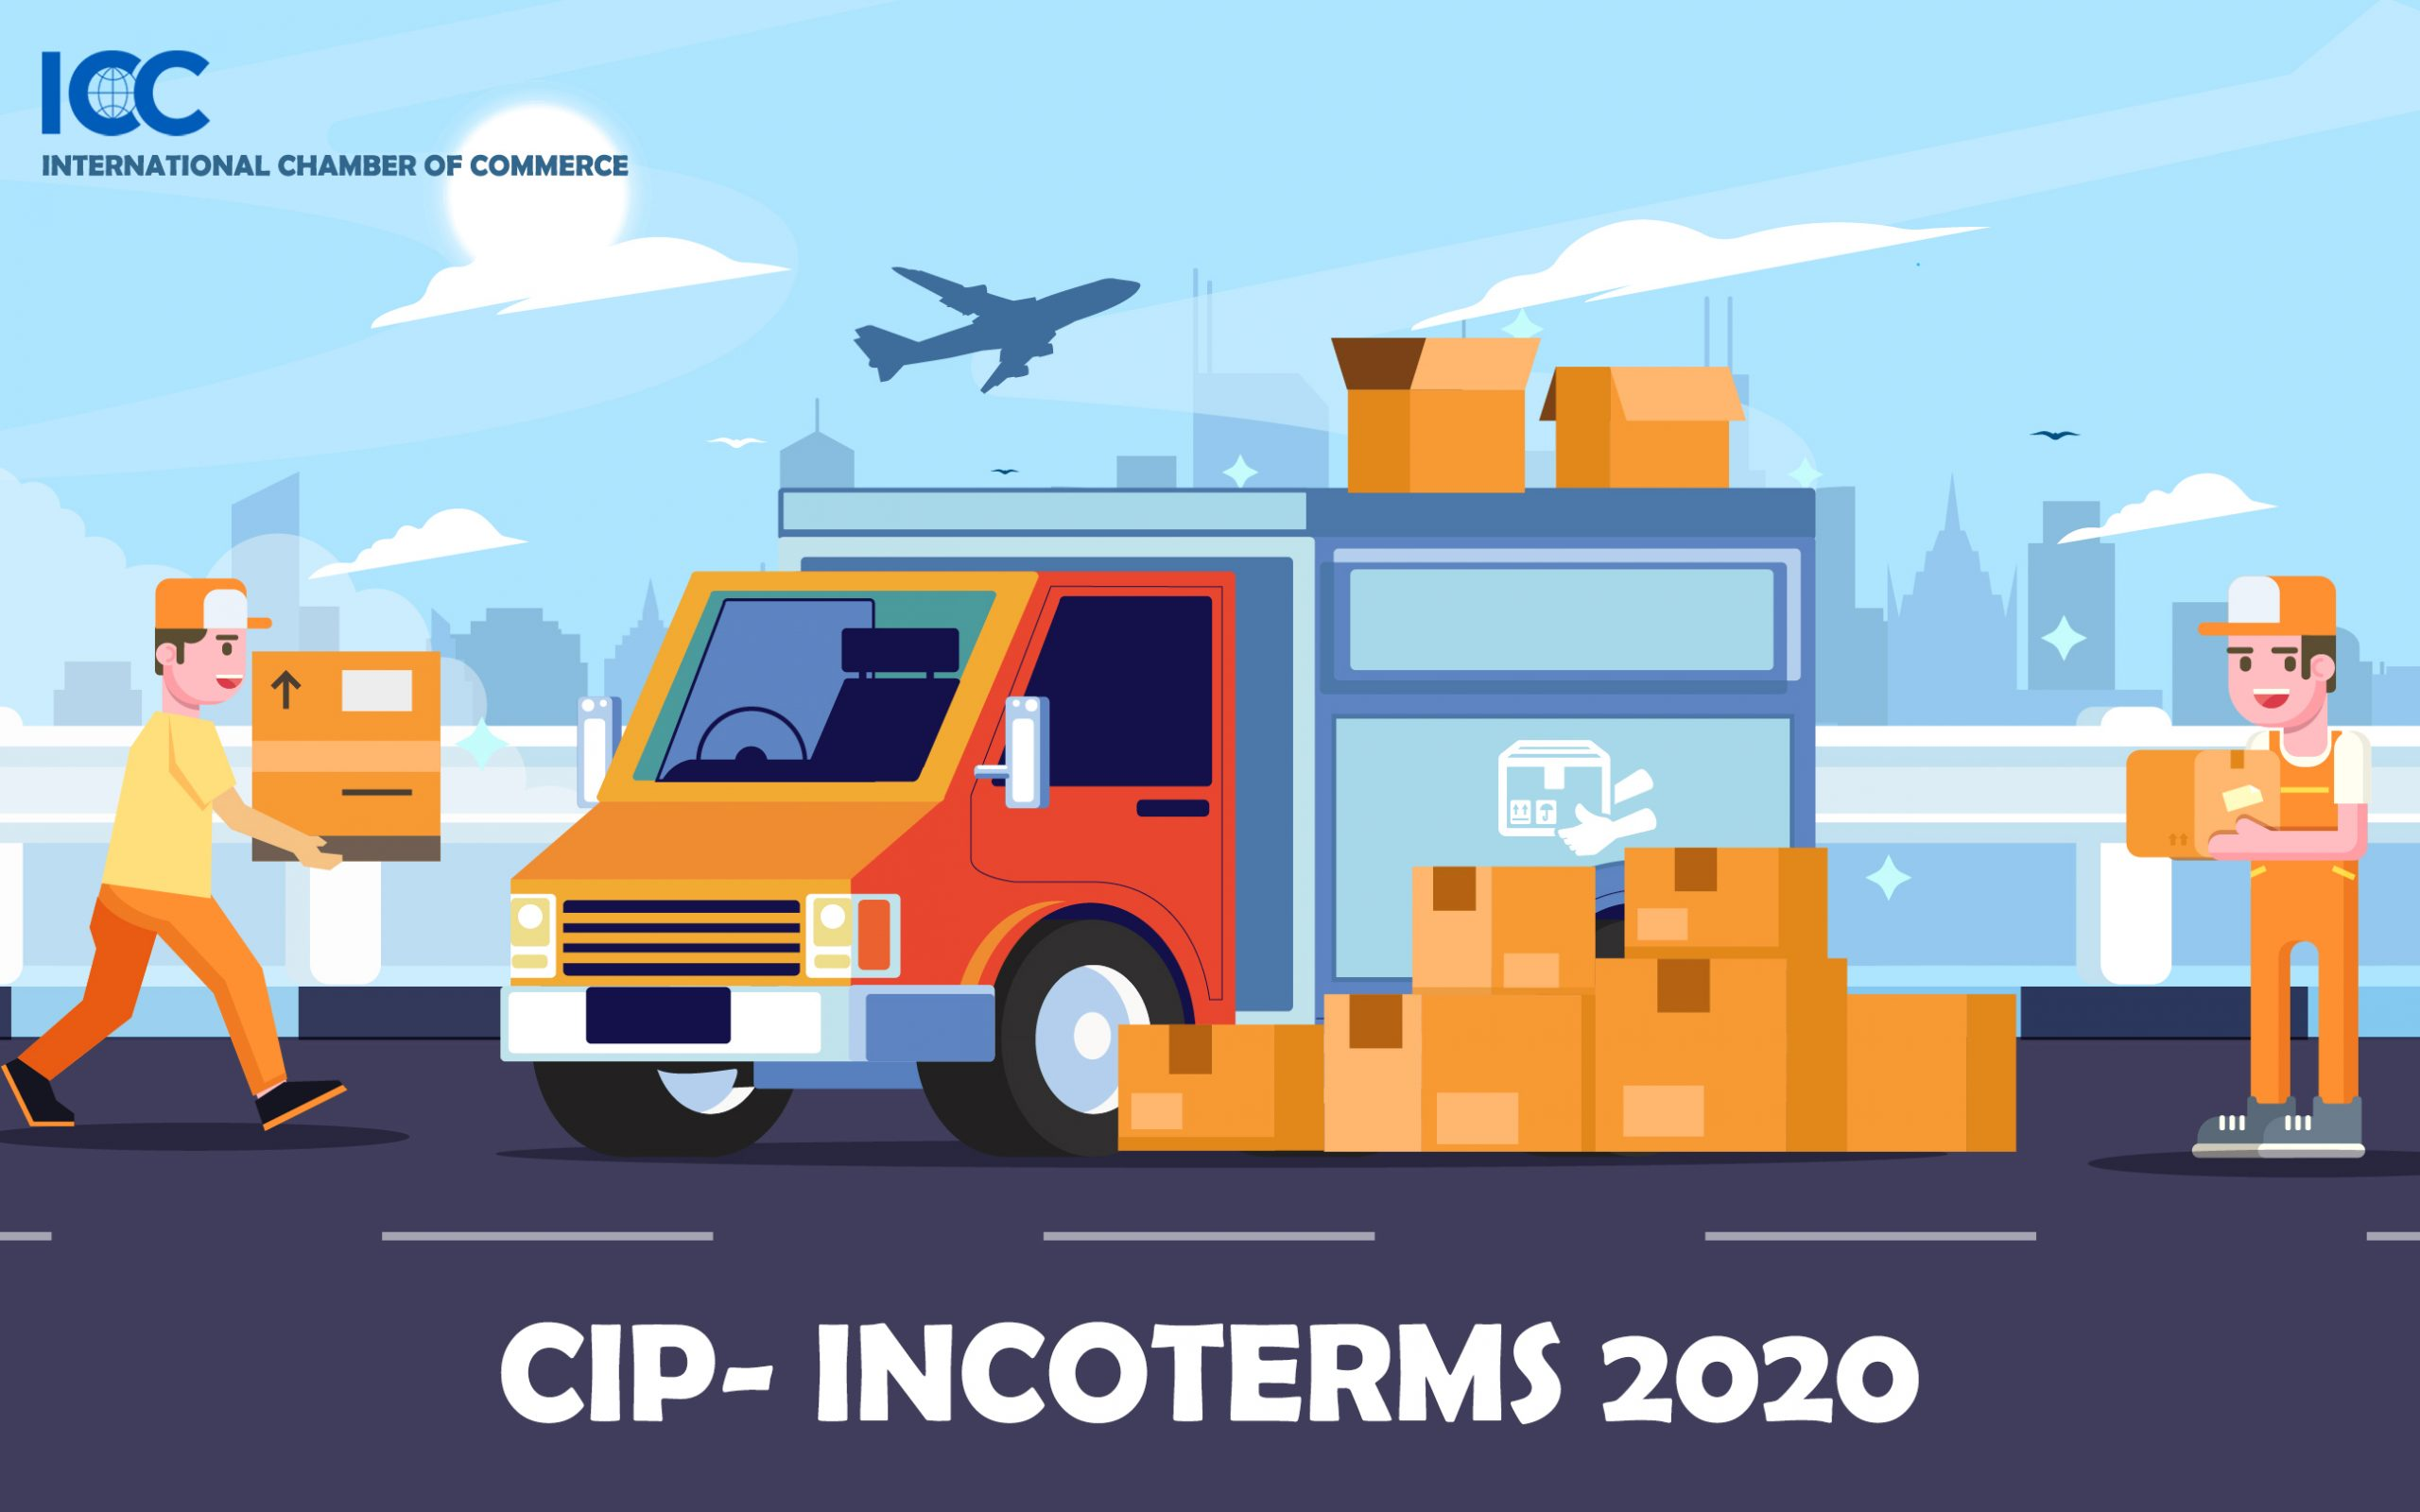 What is CIP incoterms 2020